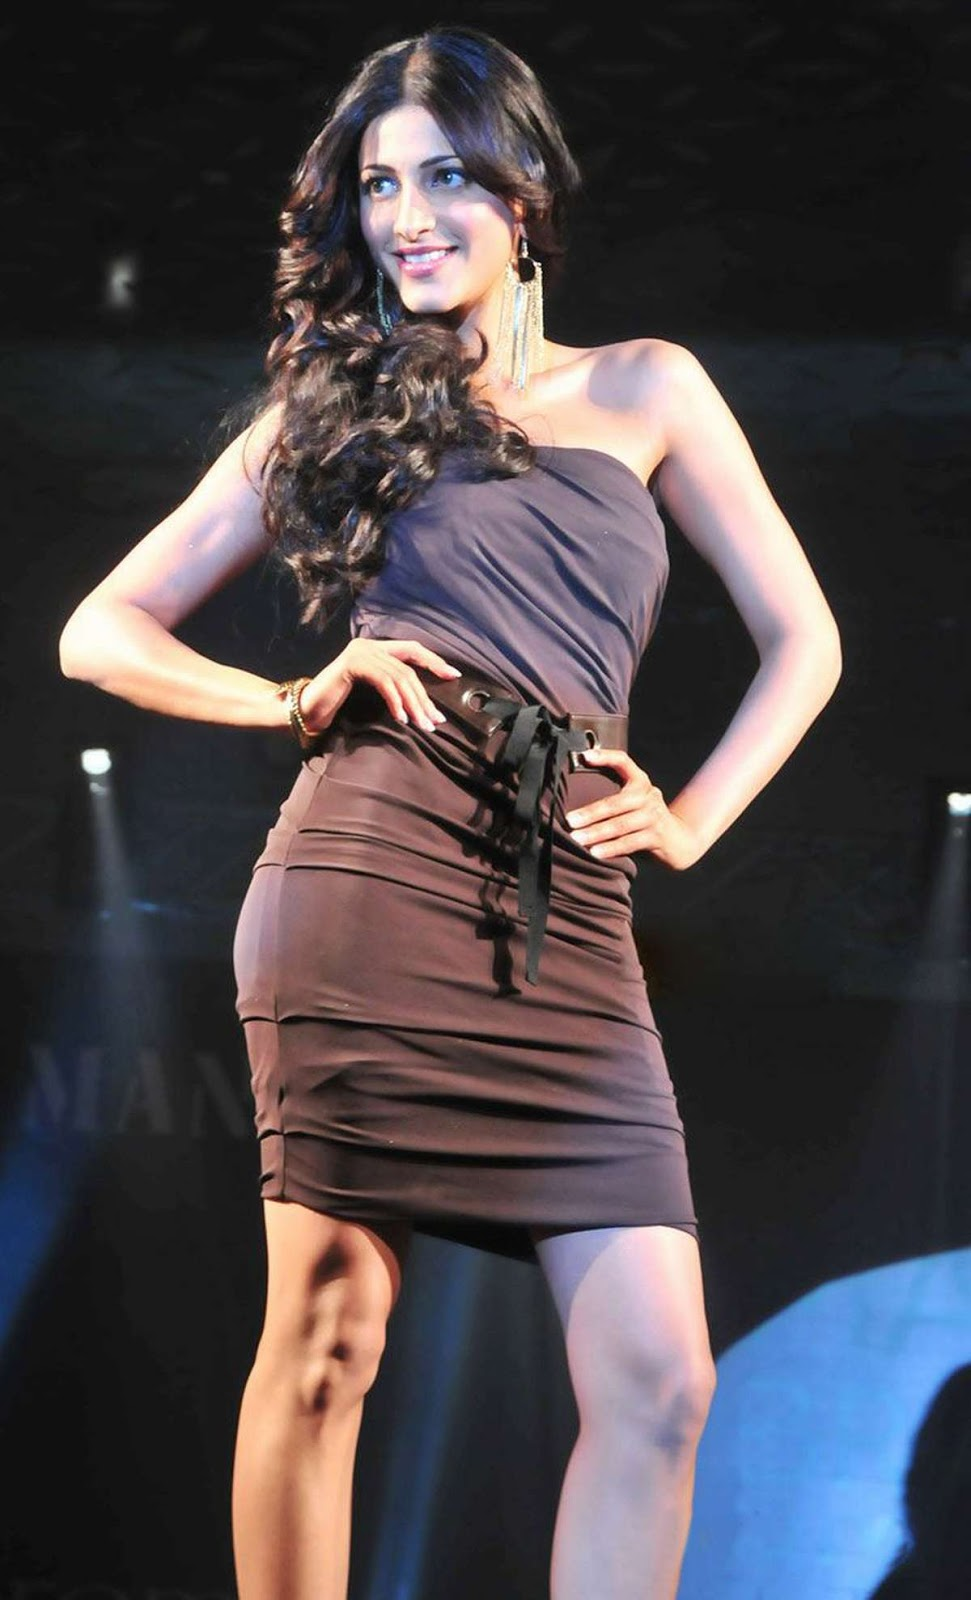 latest hd images of shruti hasan | pix786 - largest wallpapers